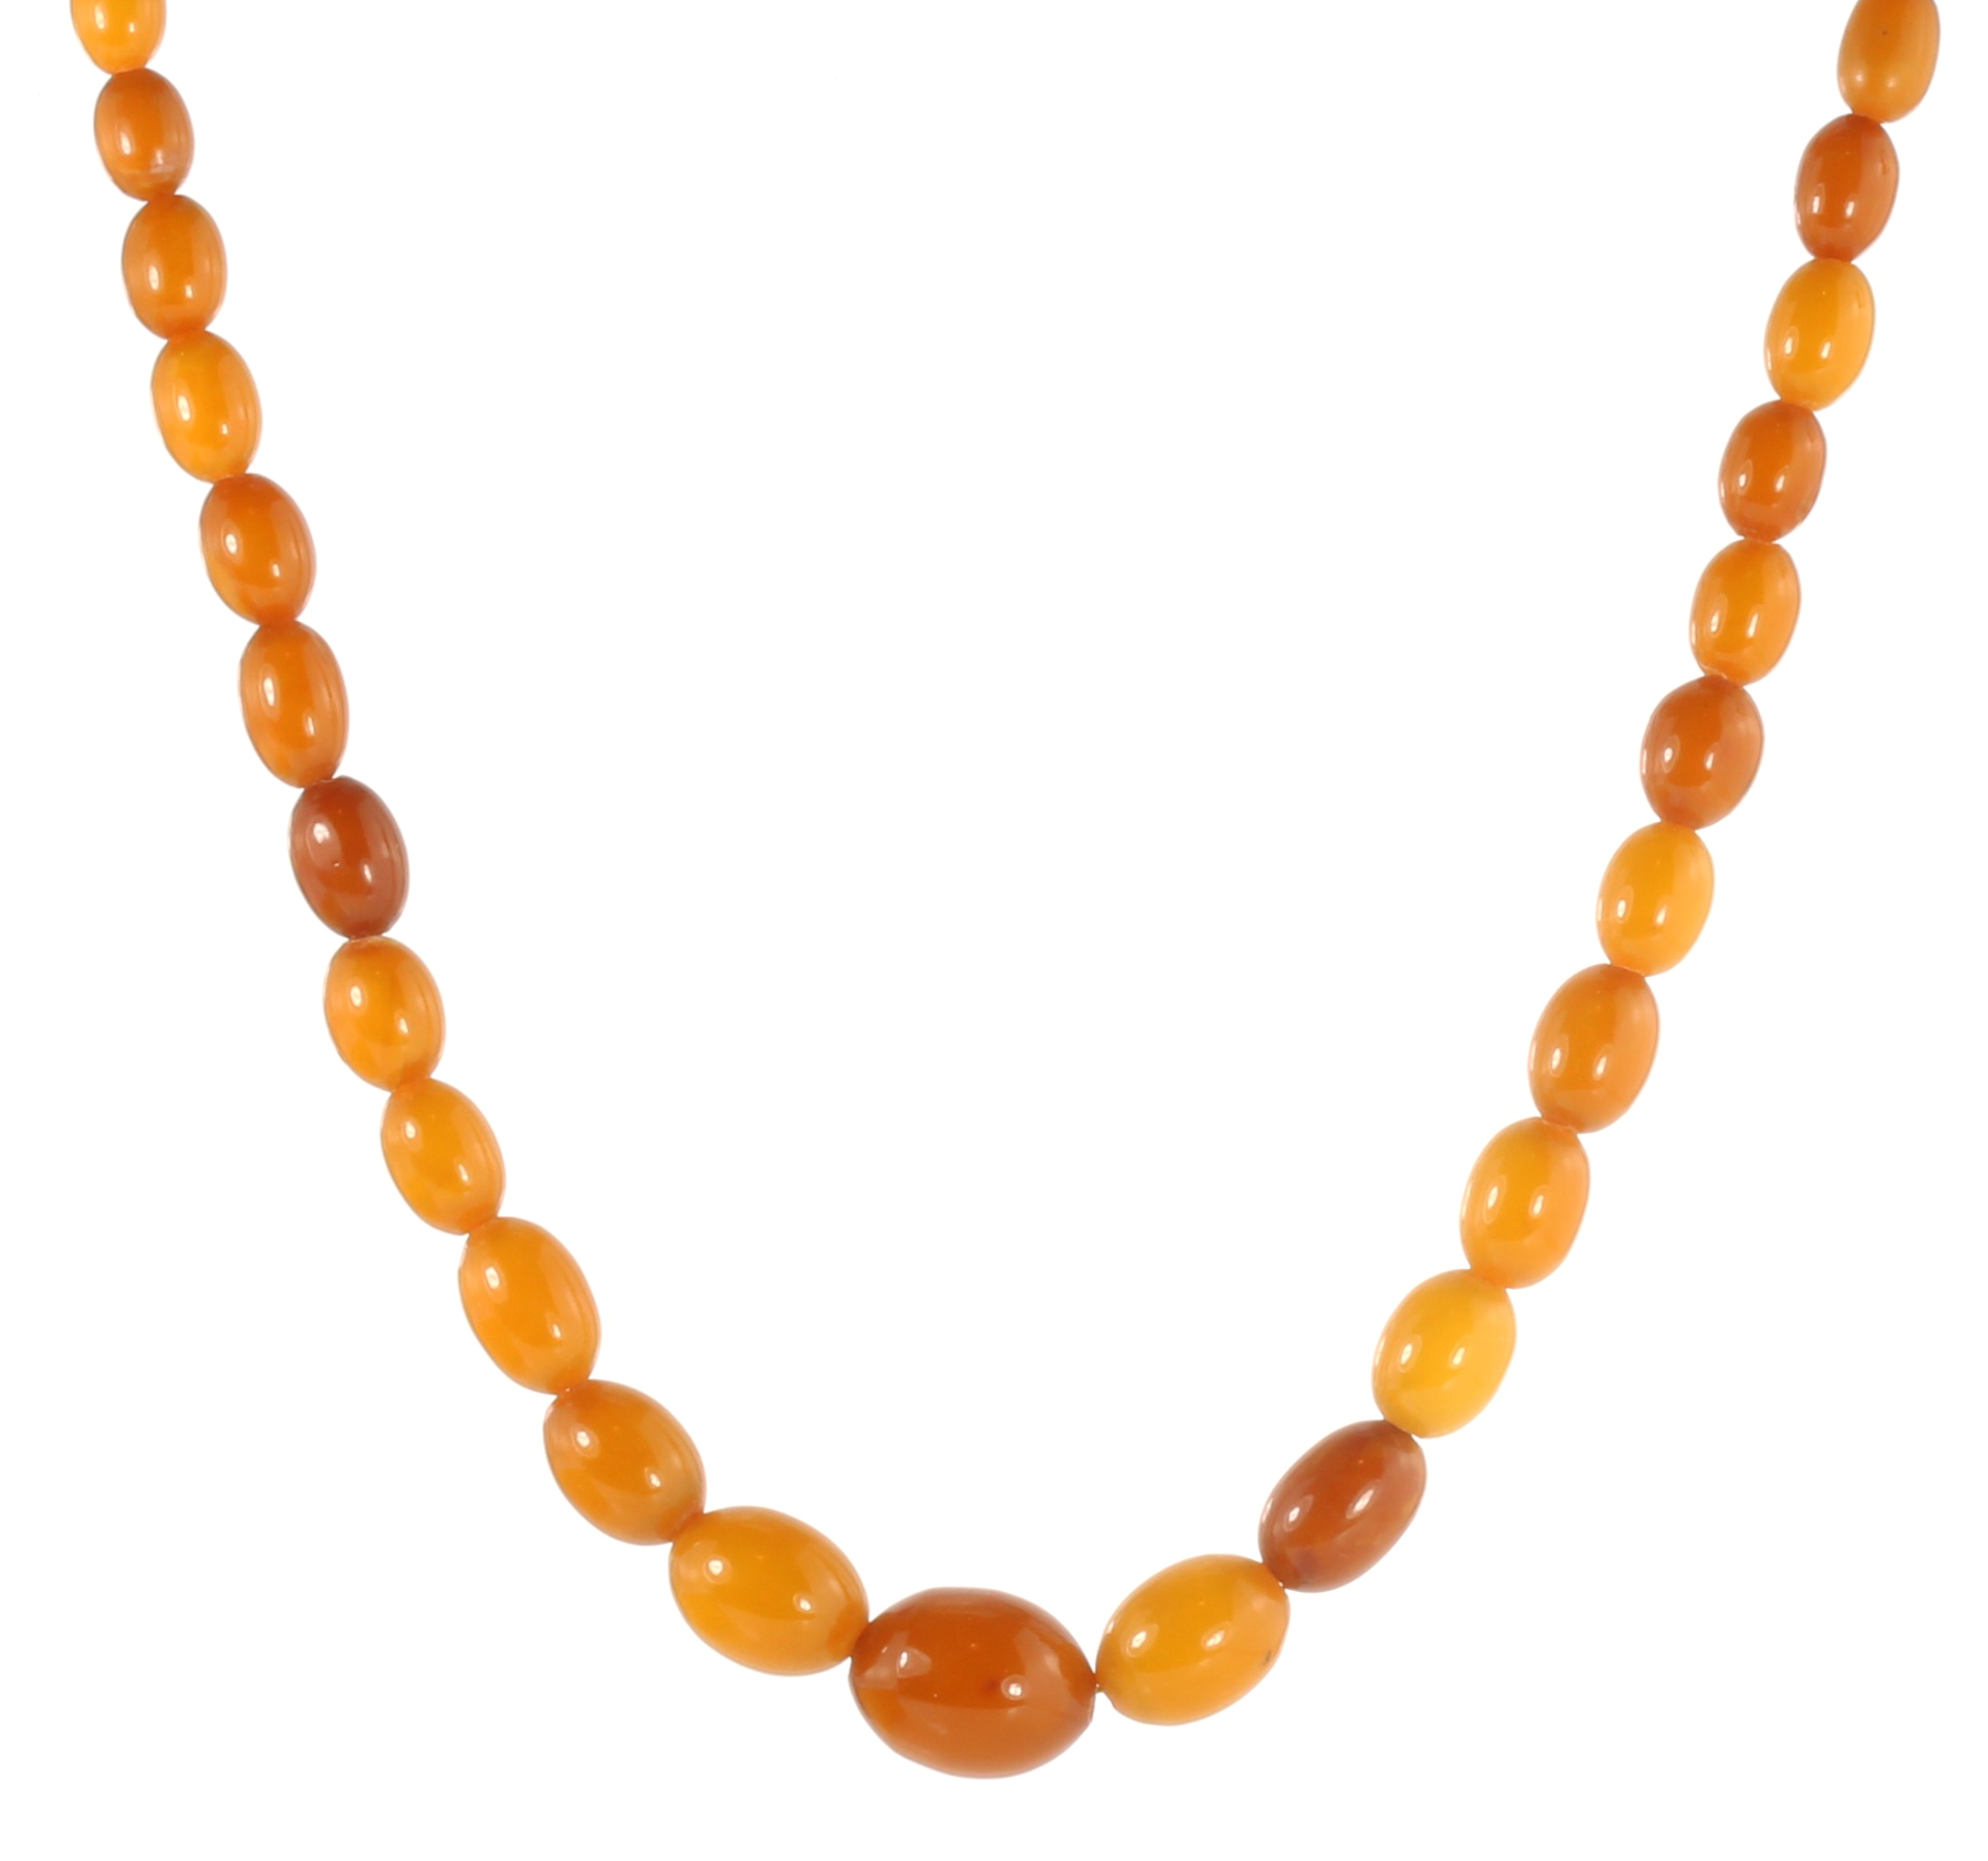 Los 5 - A NATURAL AMBER BEAD NECKLACE comprising a single row of forty-seven graduated polished oval beads